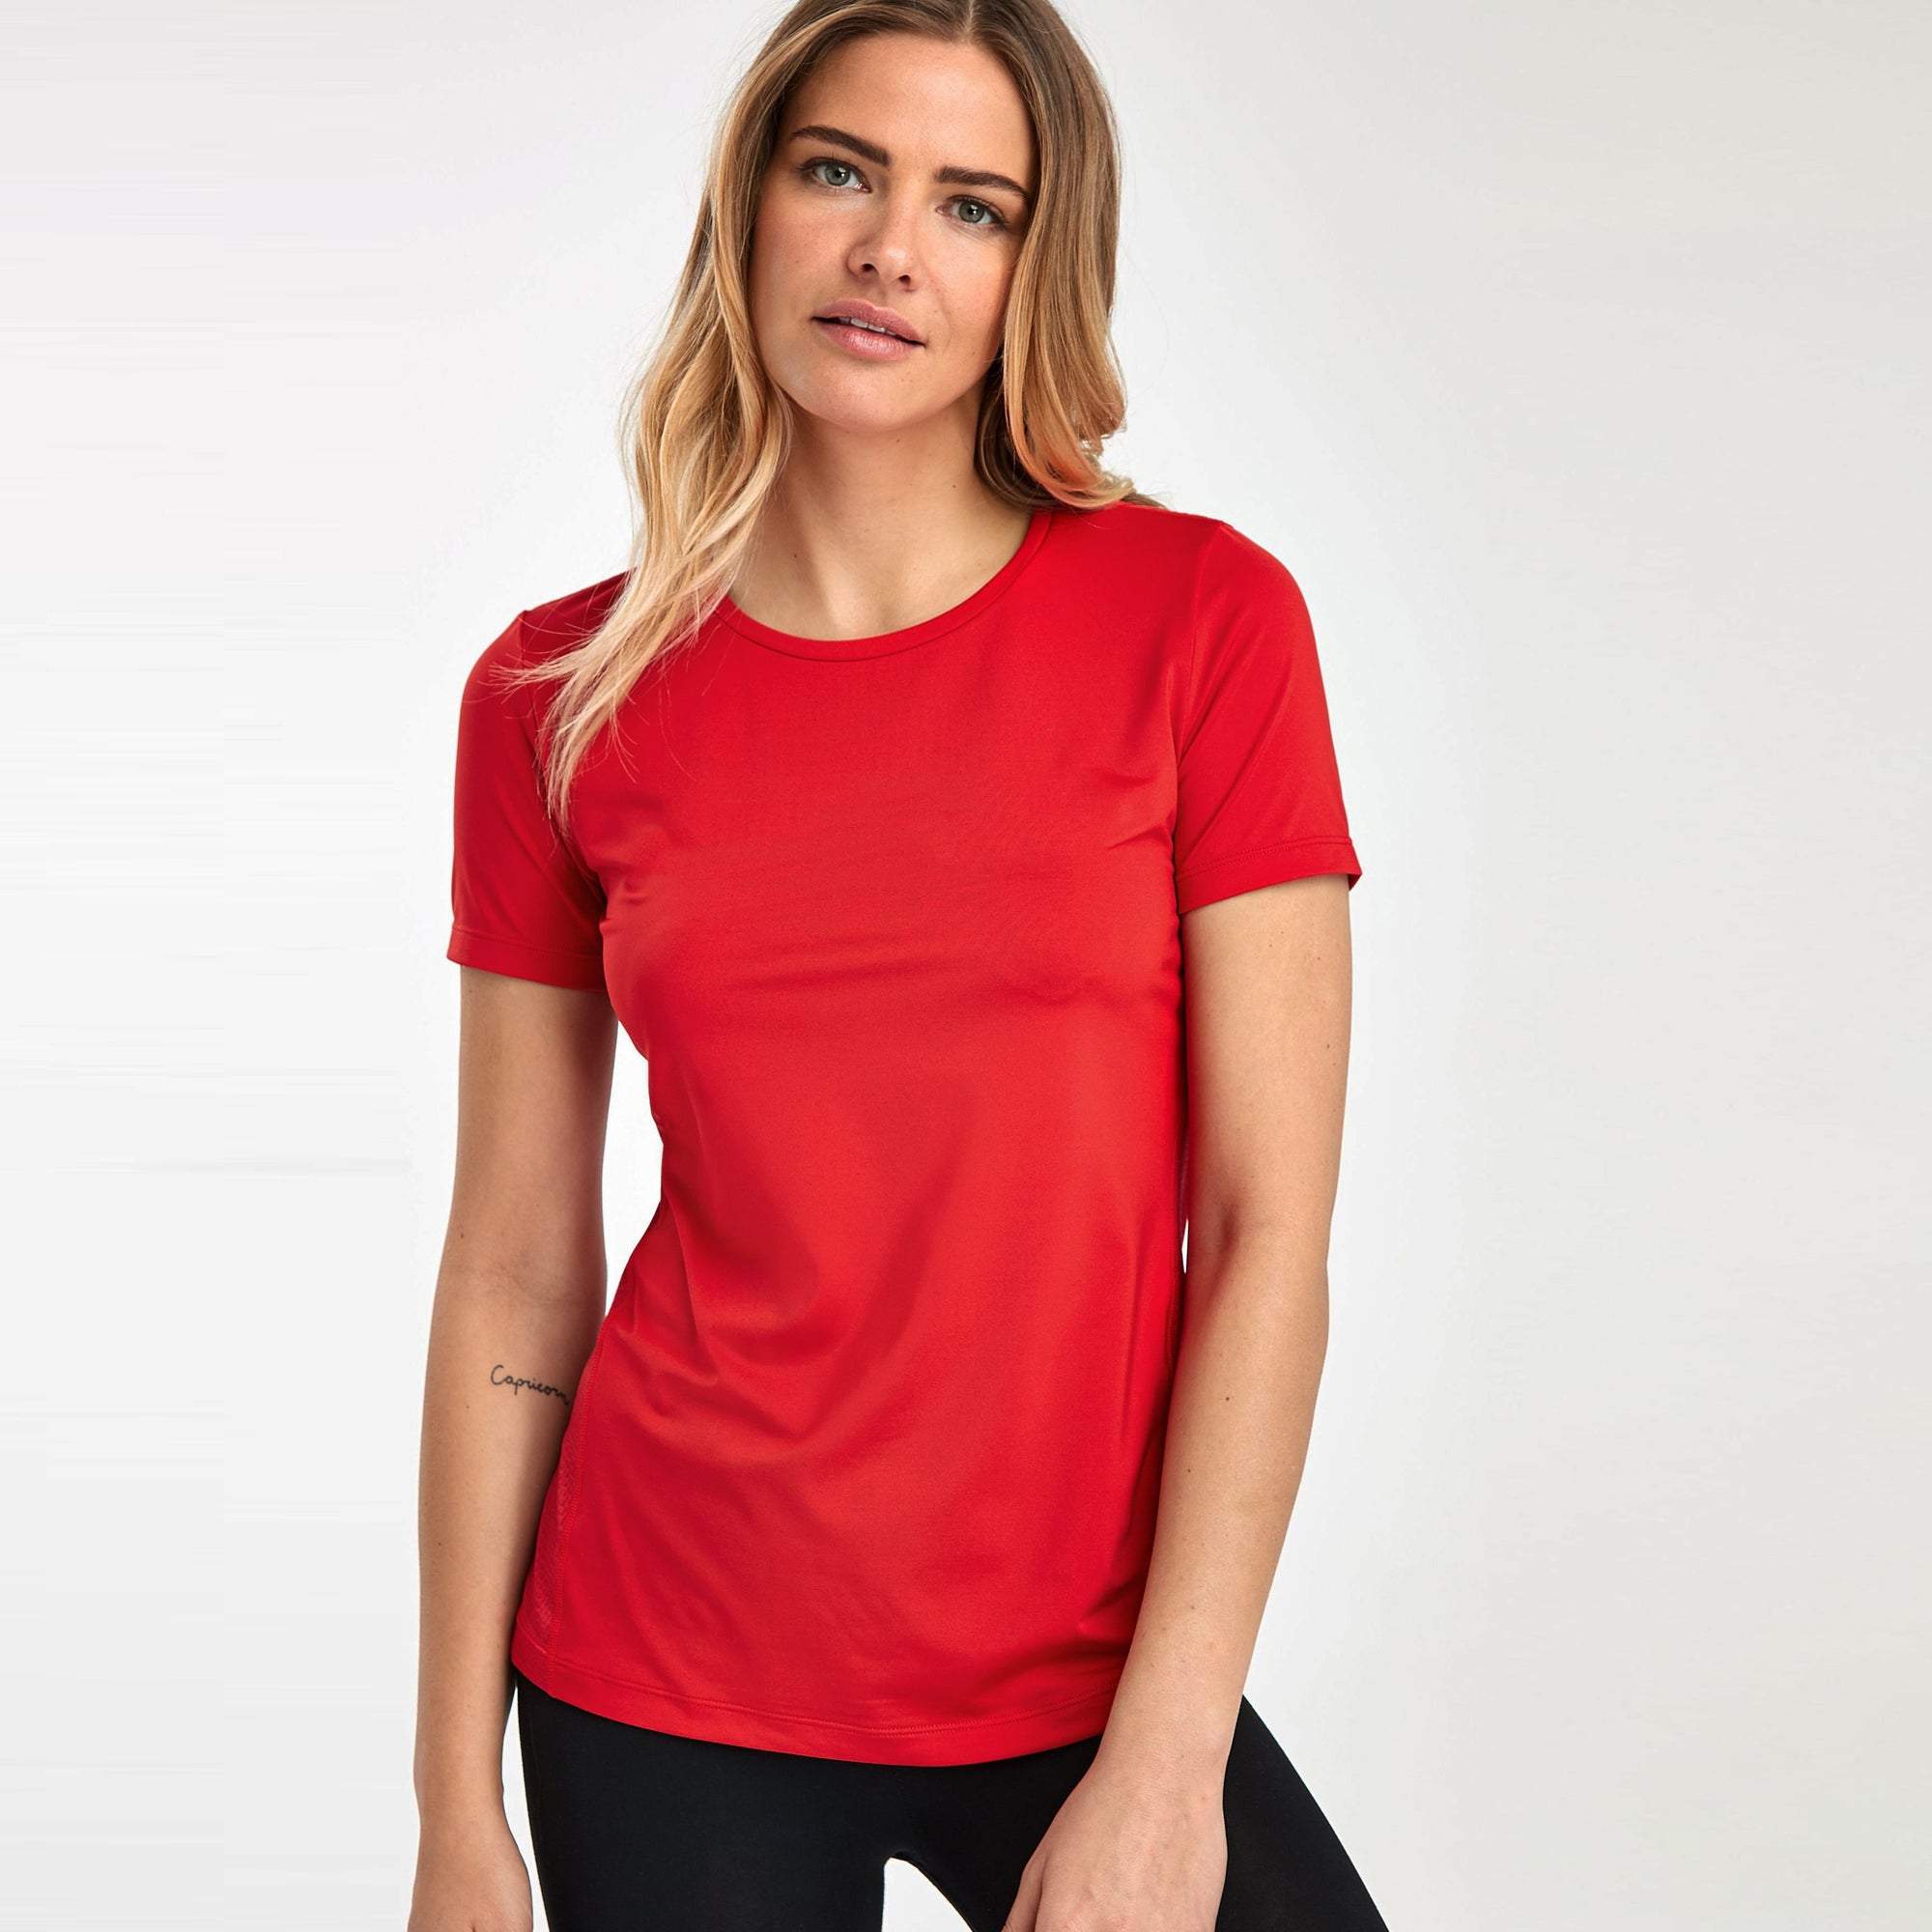 Popular Sports Crew Half Sleeve Viscous Tee Shirt For Women-Red-NA11155